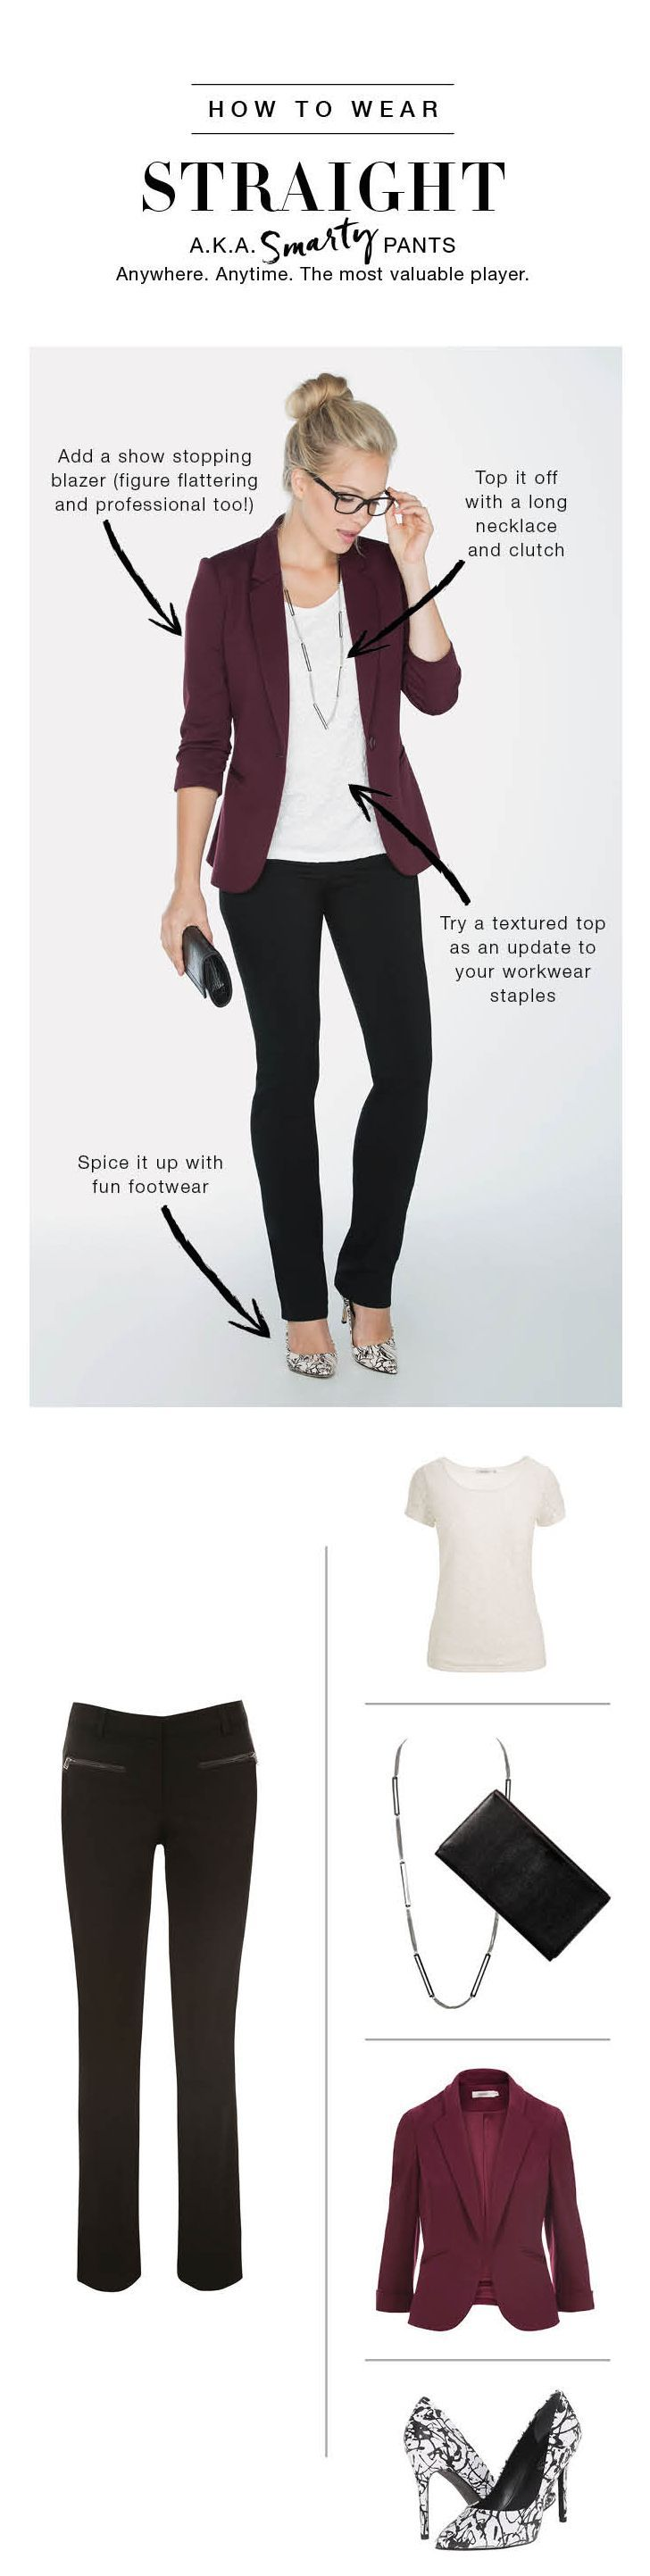 Ricki's – How To Wear | BlaaaBlaaa #workclotheswomen